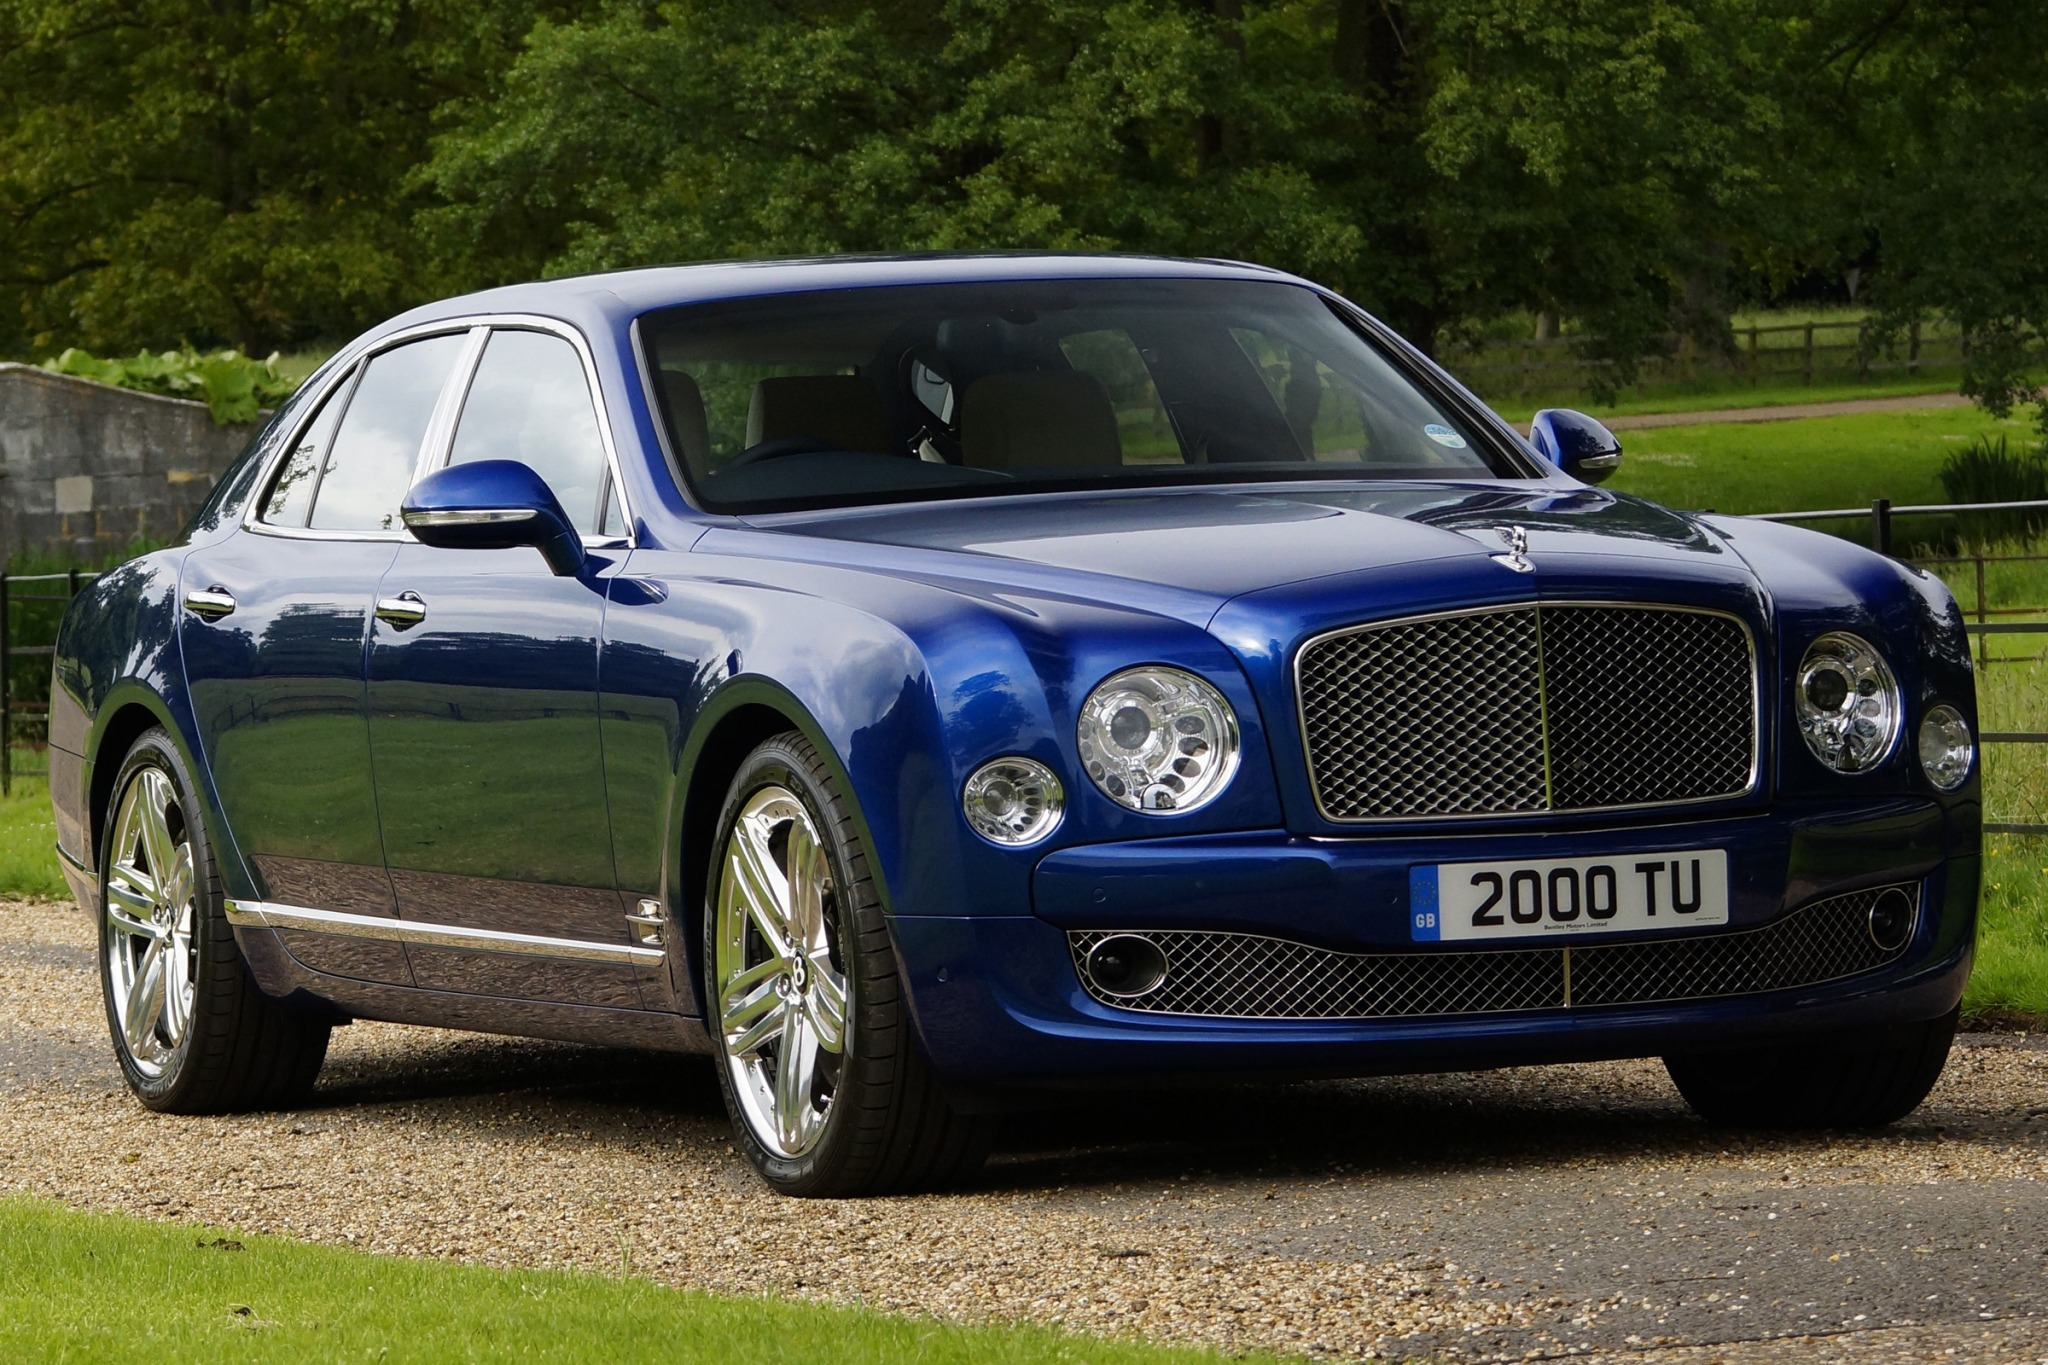 2013 Bentley Mulsanne Sed interior #3